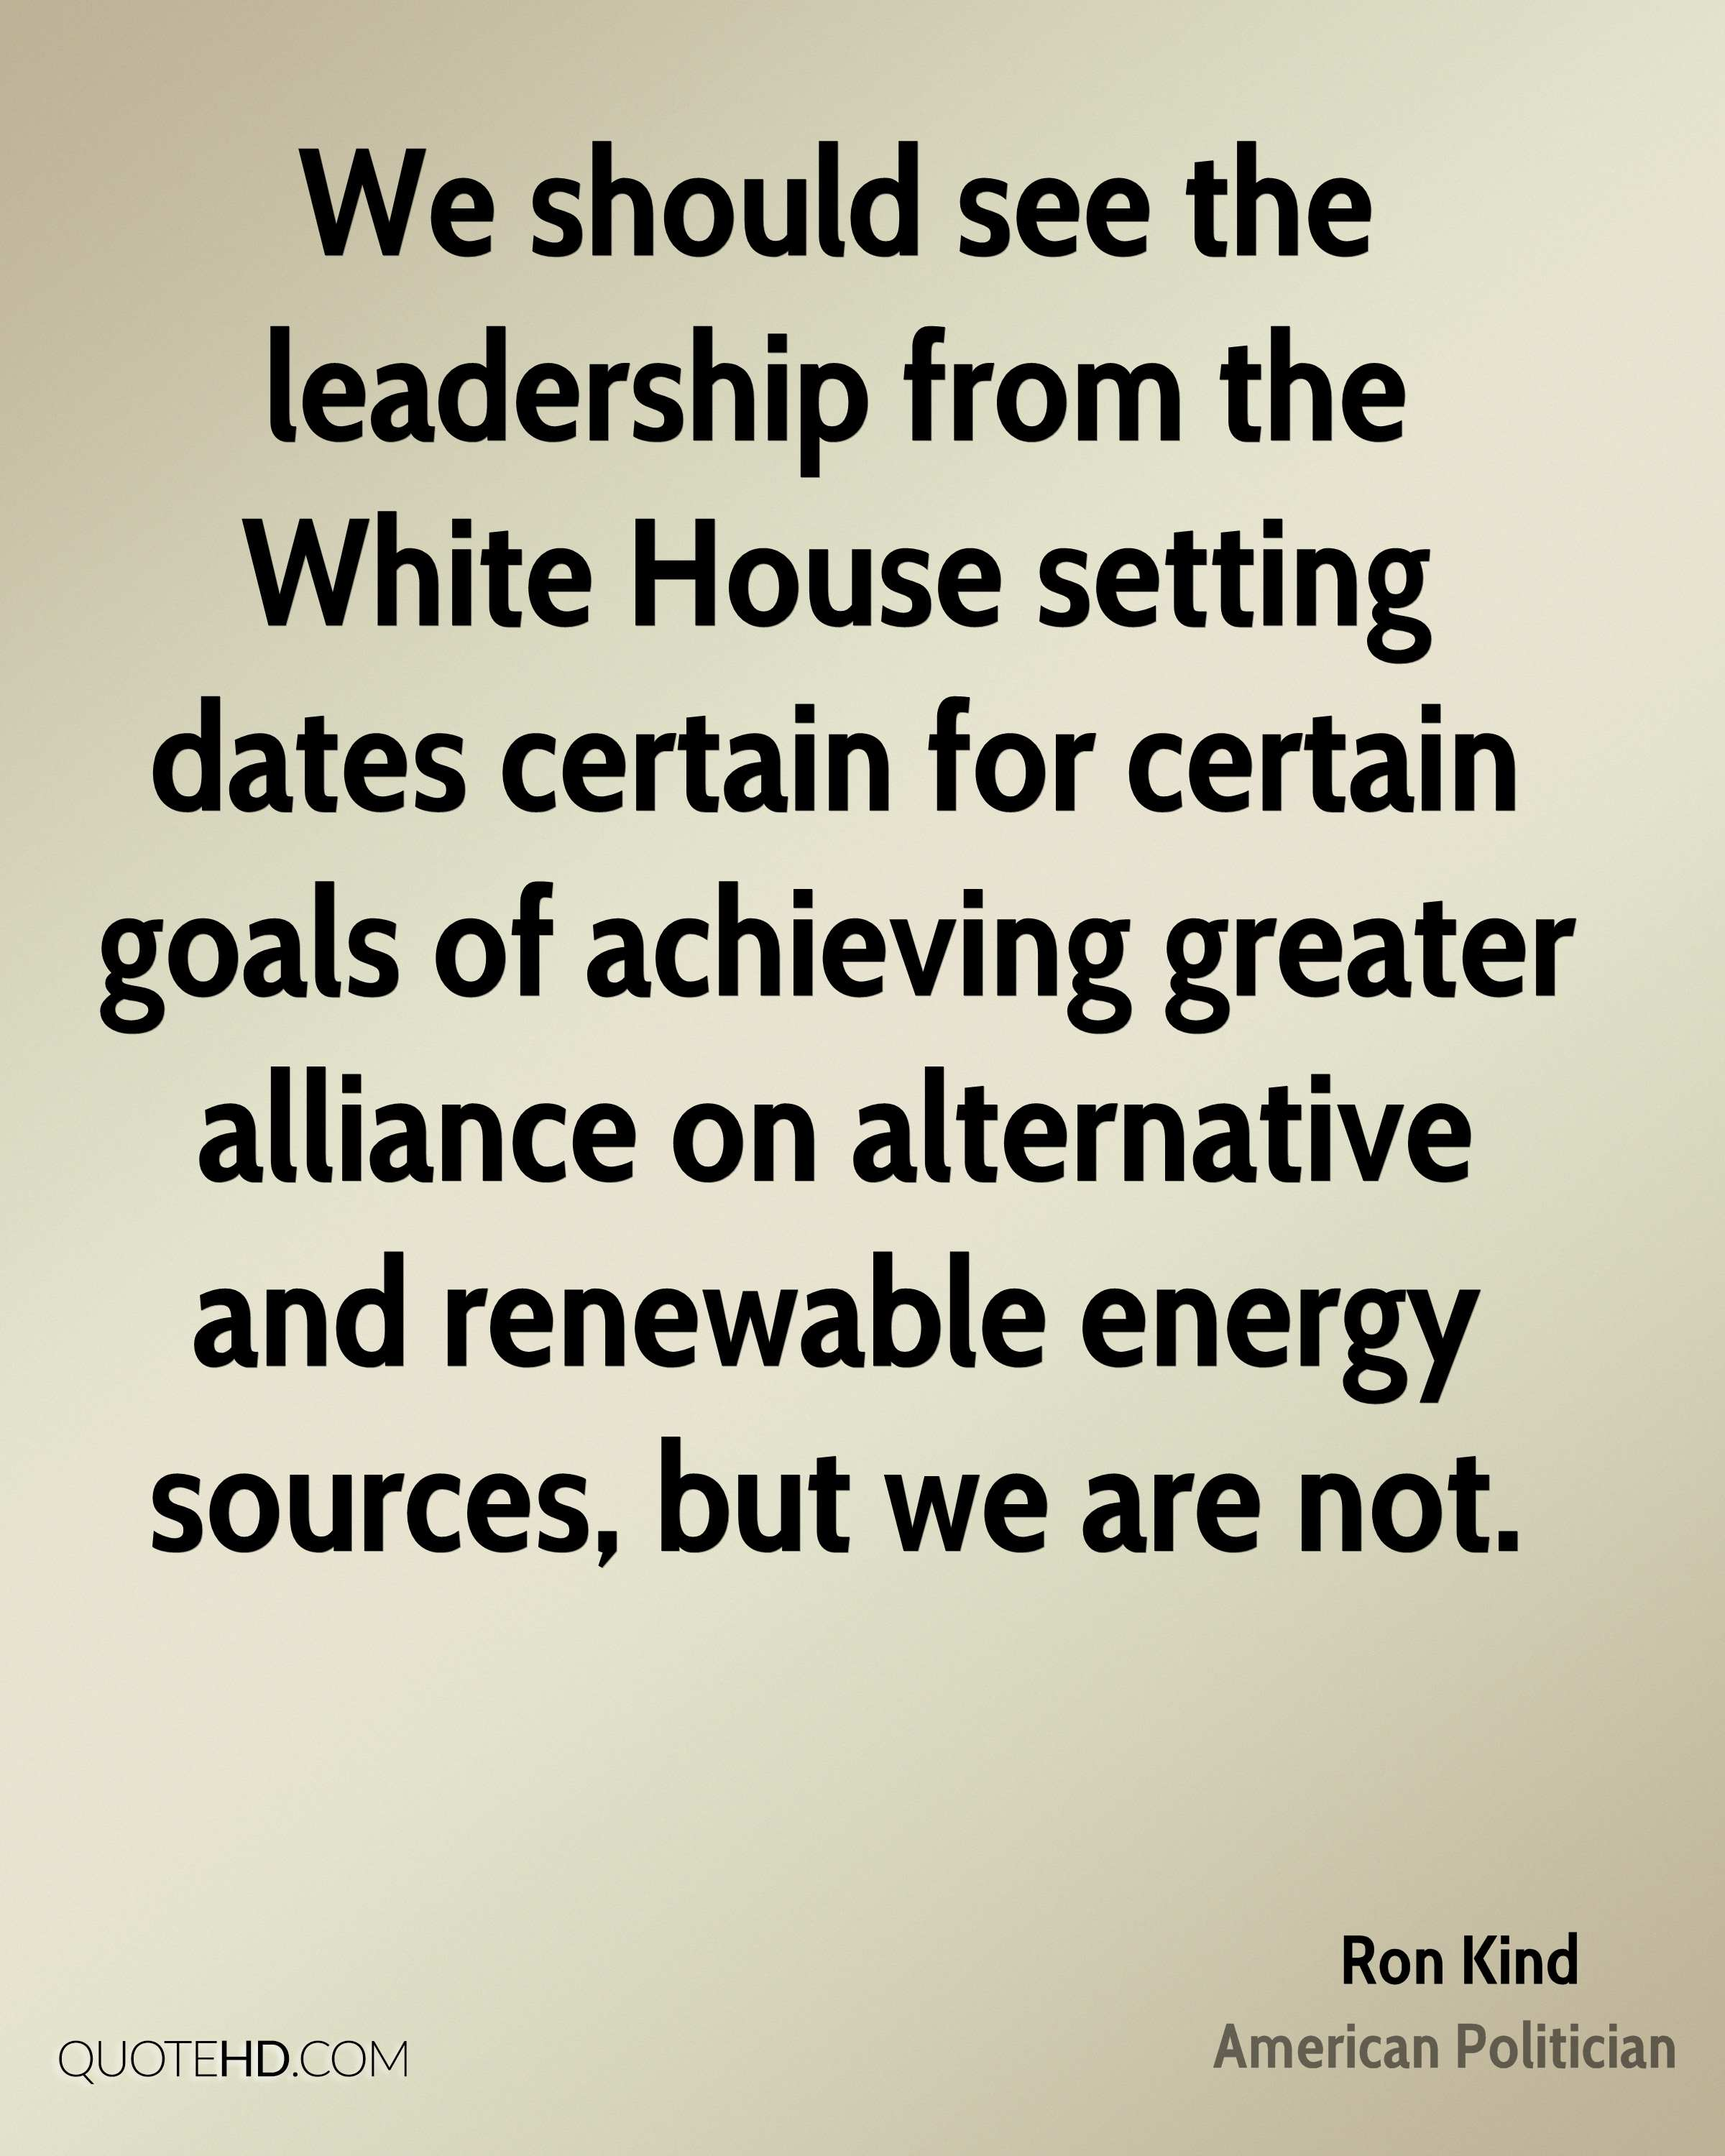 We should see the leadership from the White House setting dates certain for certain goals of achieving greater alliance on alternative and renewable energy sources, but we are not.